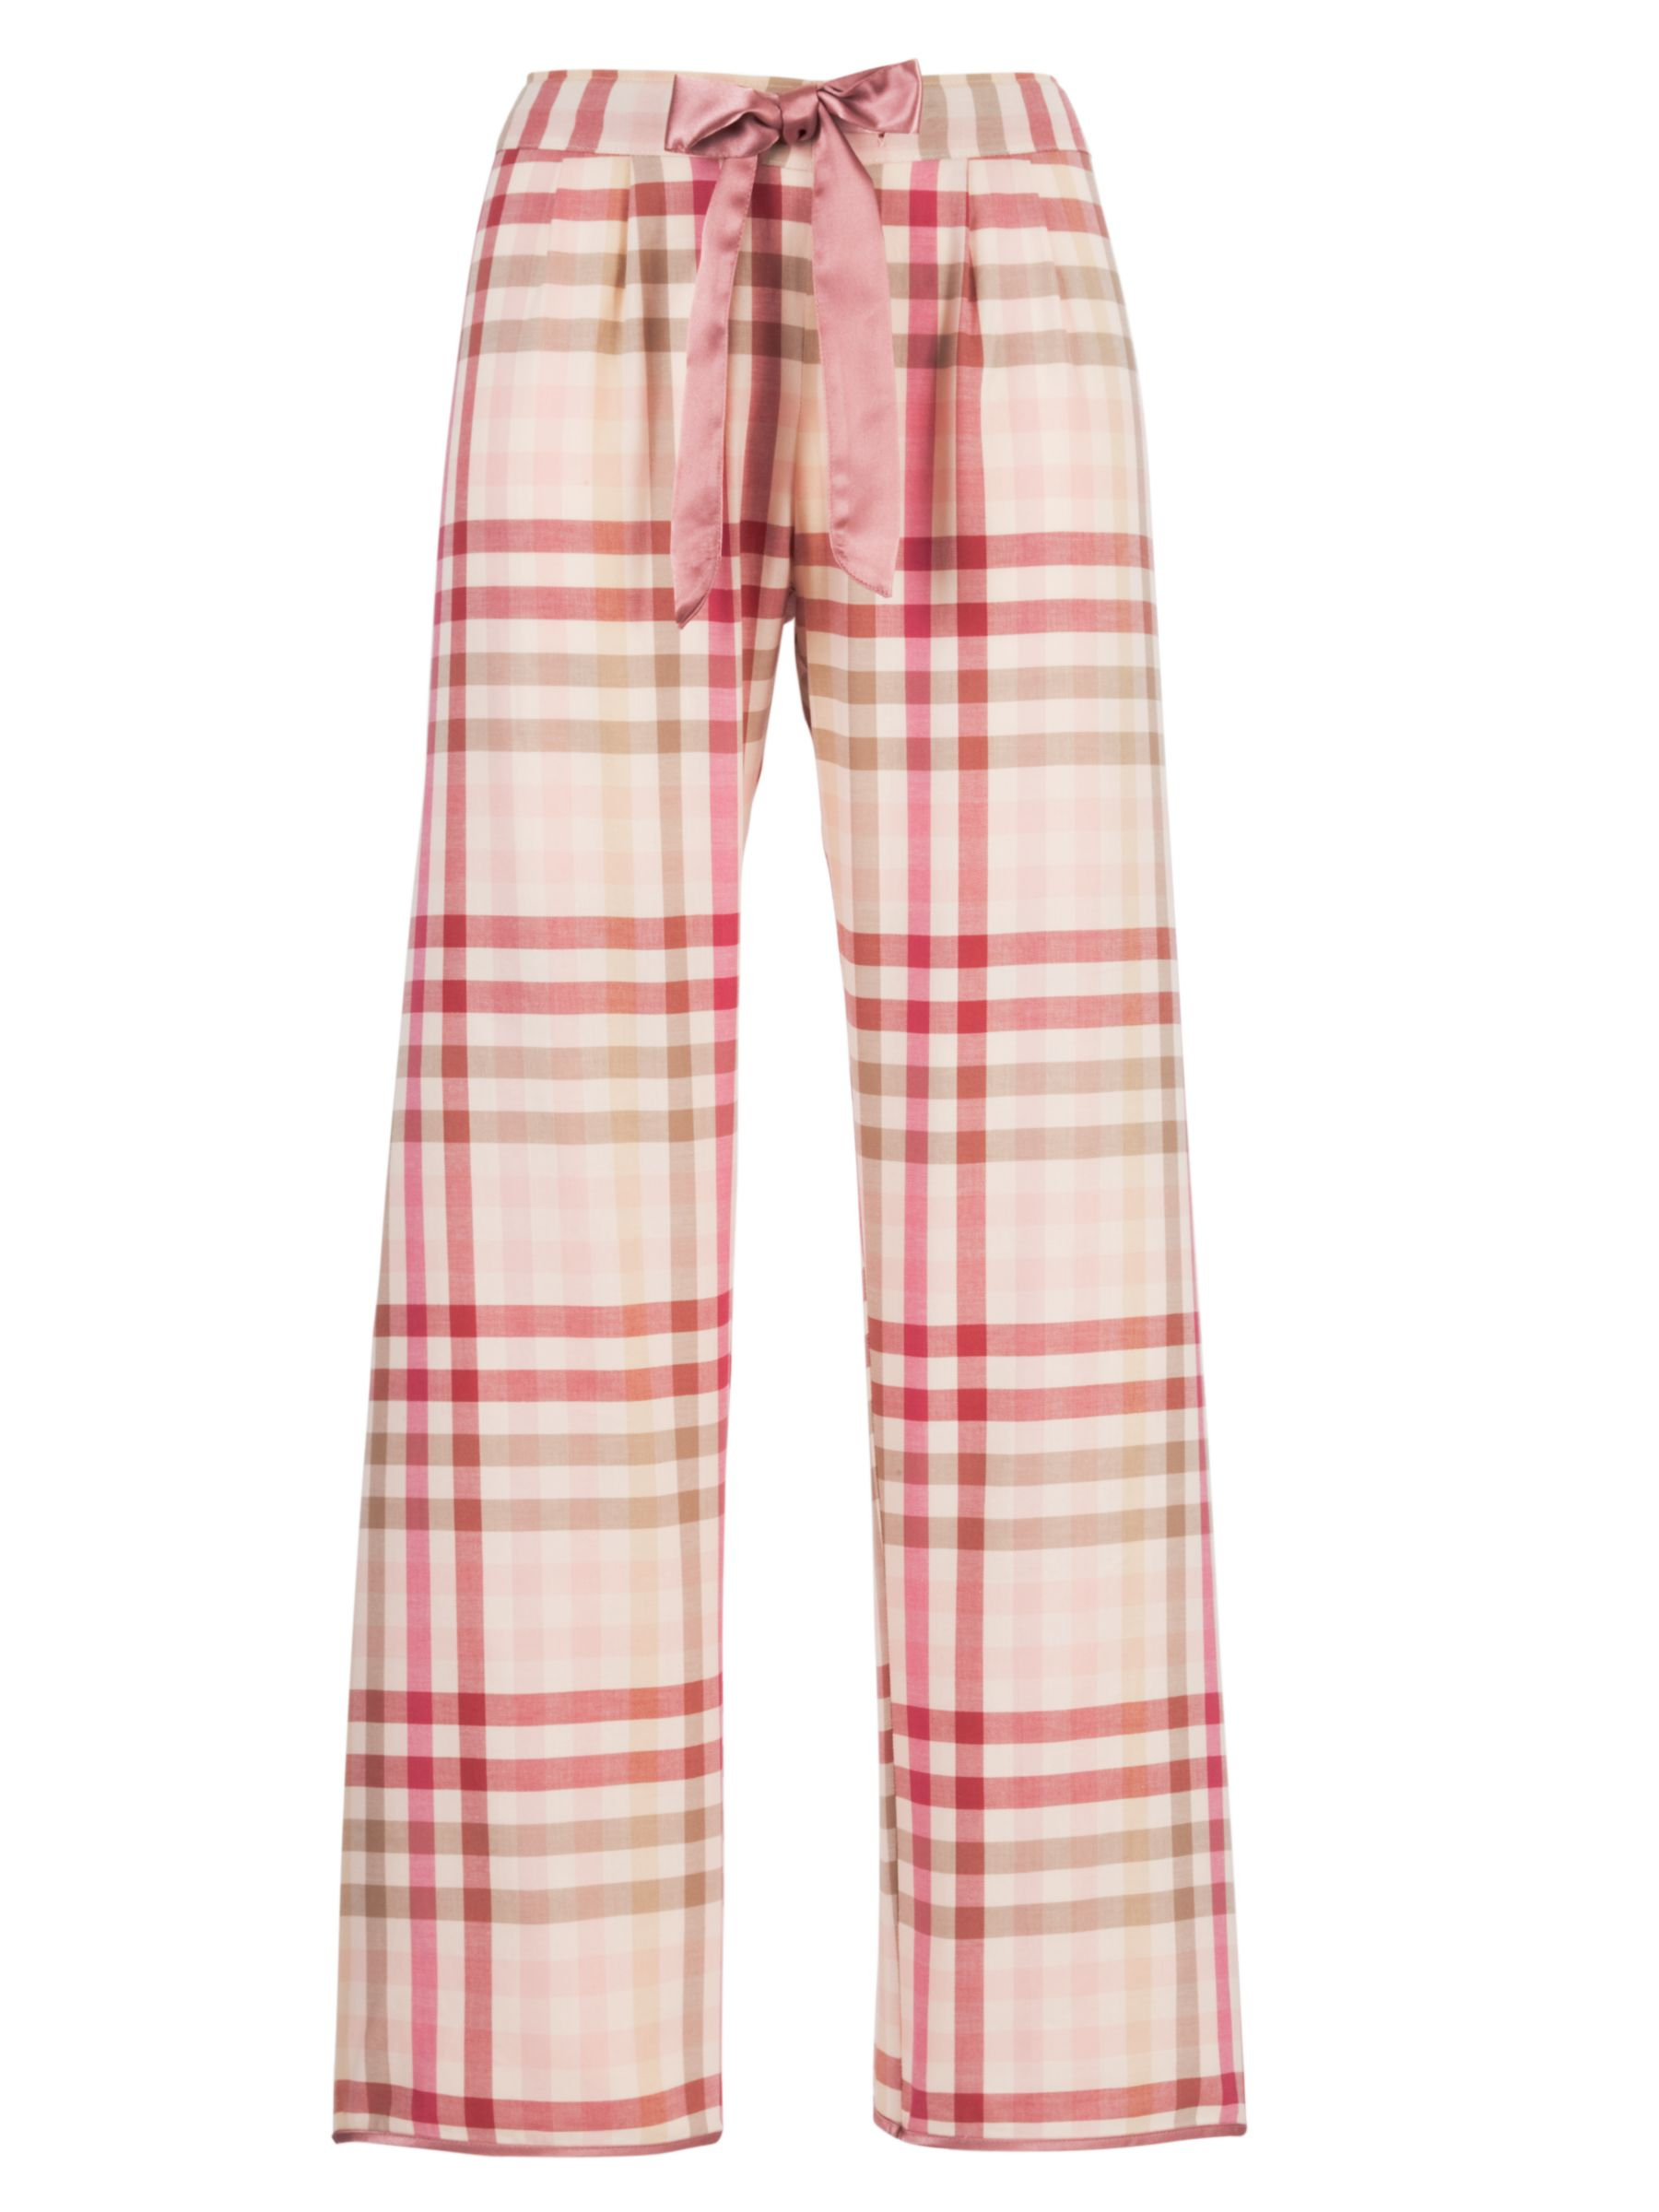 Cyberjammies Dune Check Pyjama Trousers, Rose